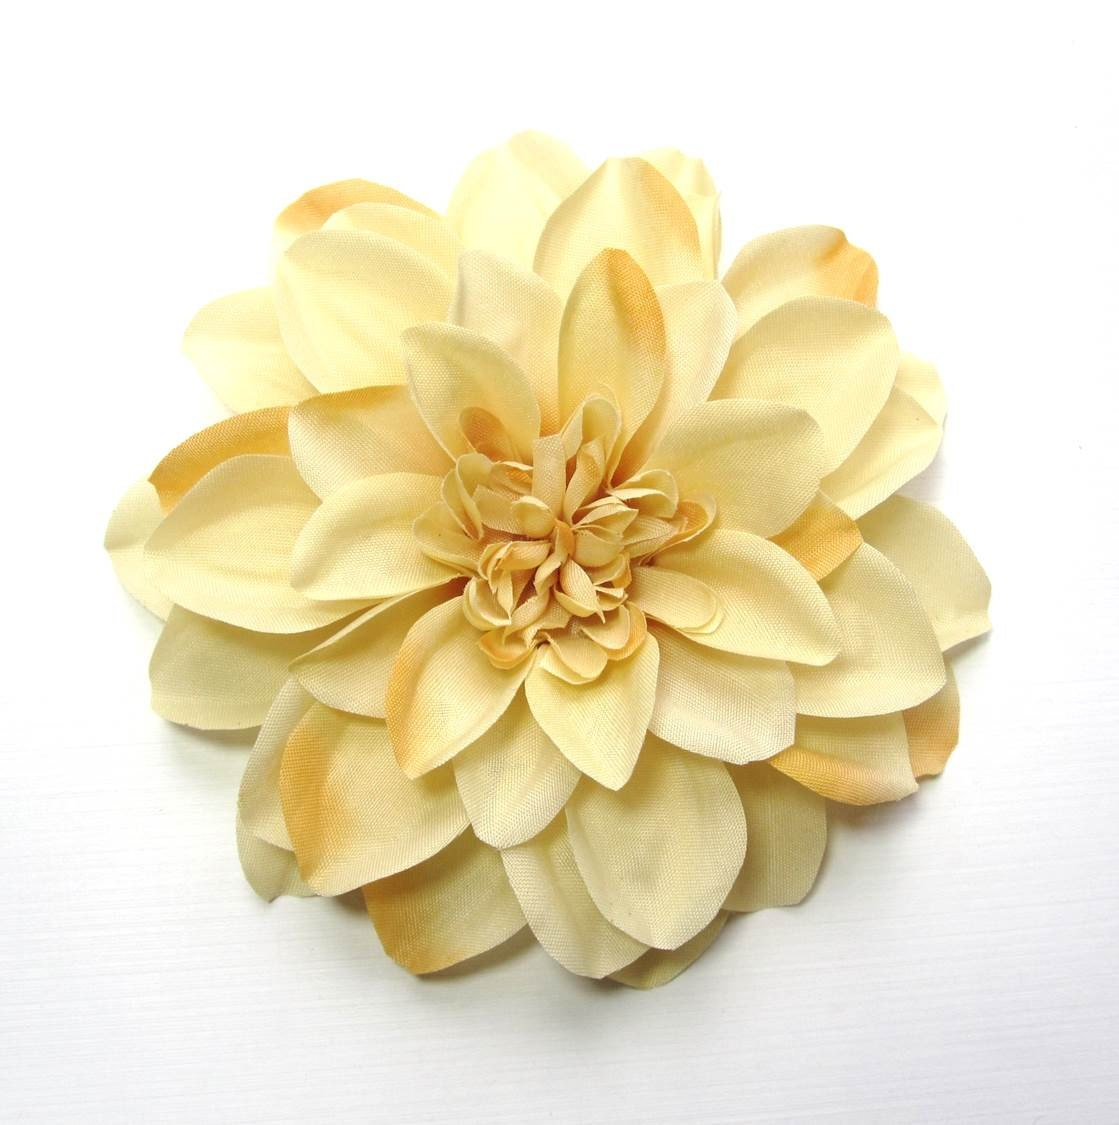 Fabric Flower Hair Accessory: Pin, Hair Clip, or Fascinator - Dark Cream Dahlia - HairFair